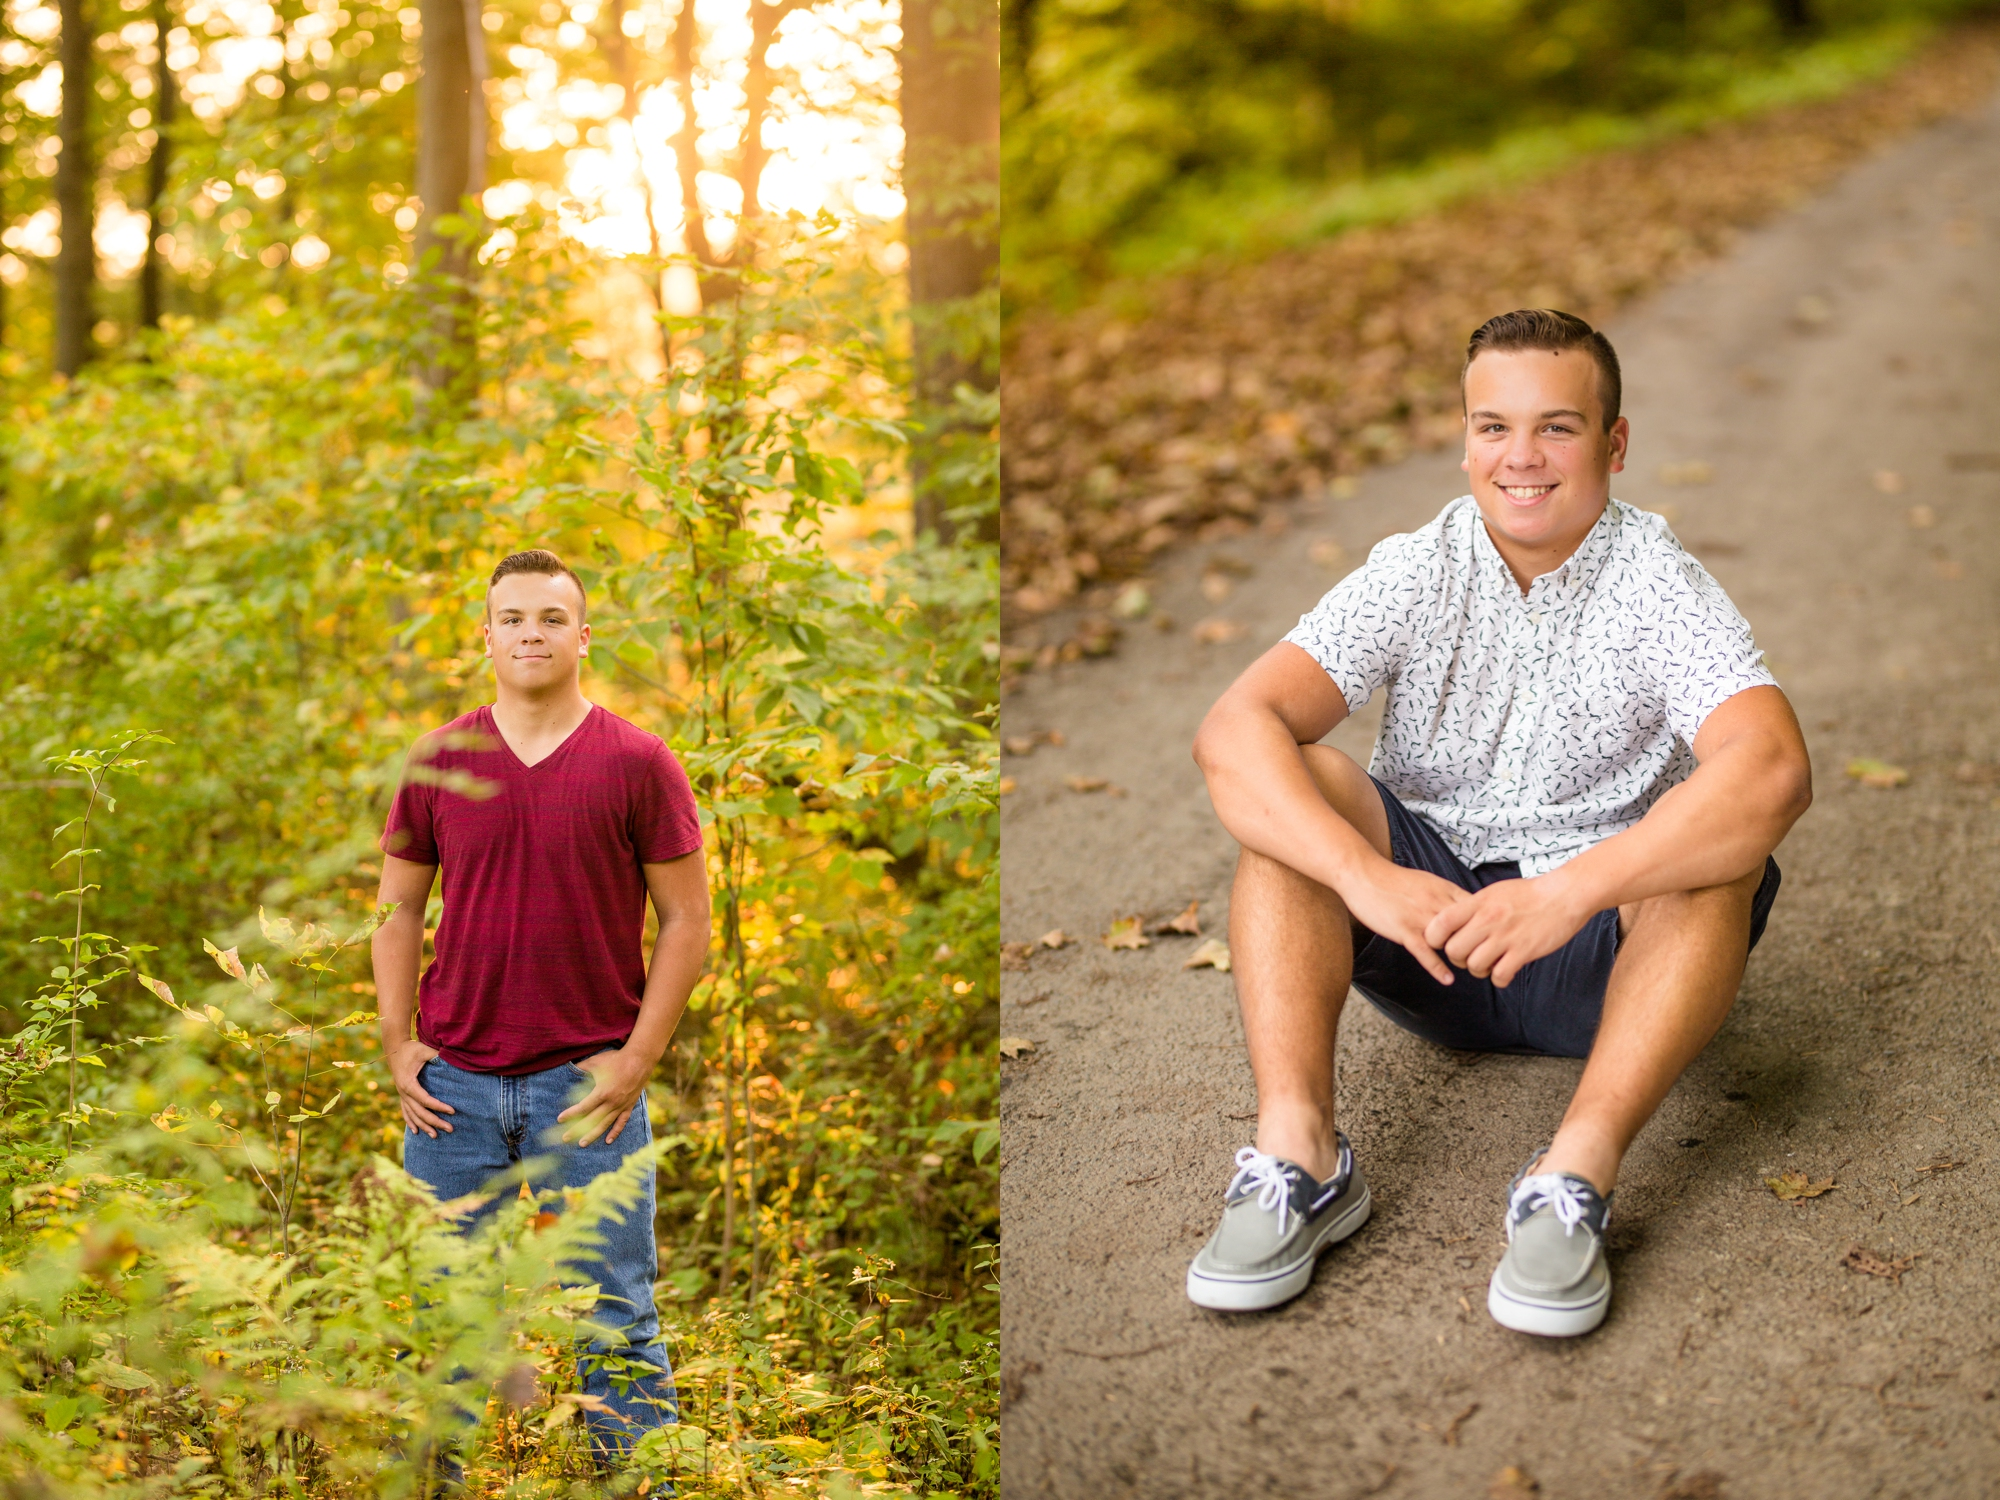 senior pictures pittsburgh, places to take senior pictures in pittsburgh, best places to take senior pictures in pittsburgh, mcconnells mill senior photos